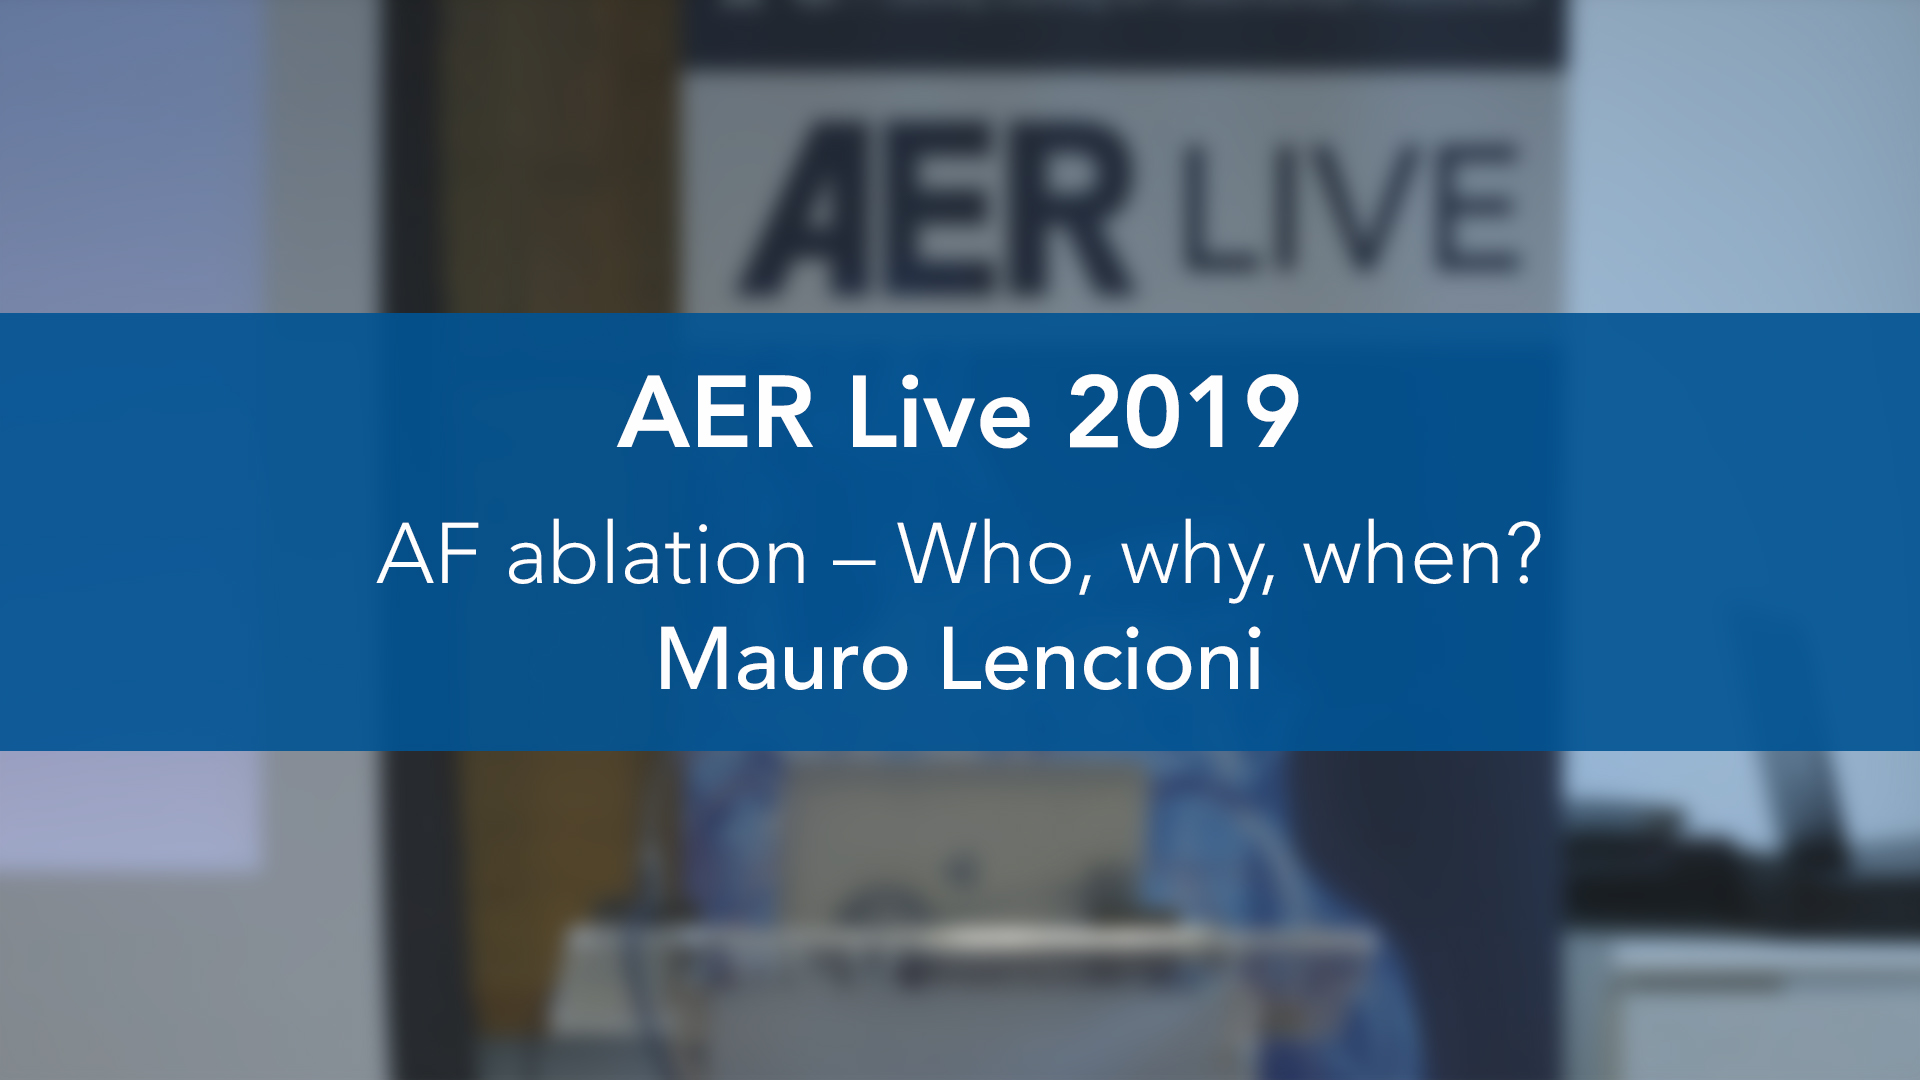 AER: Live 2019: AF ablation – Who, why, when? — Mauro Lencioni